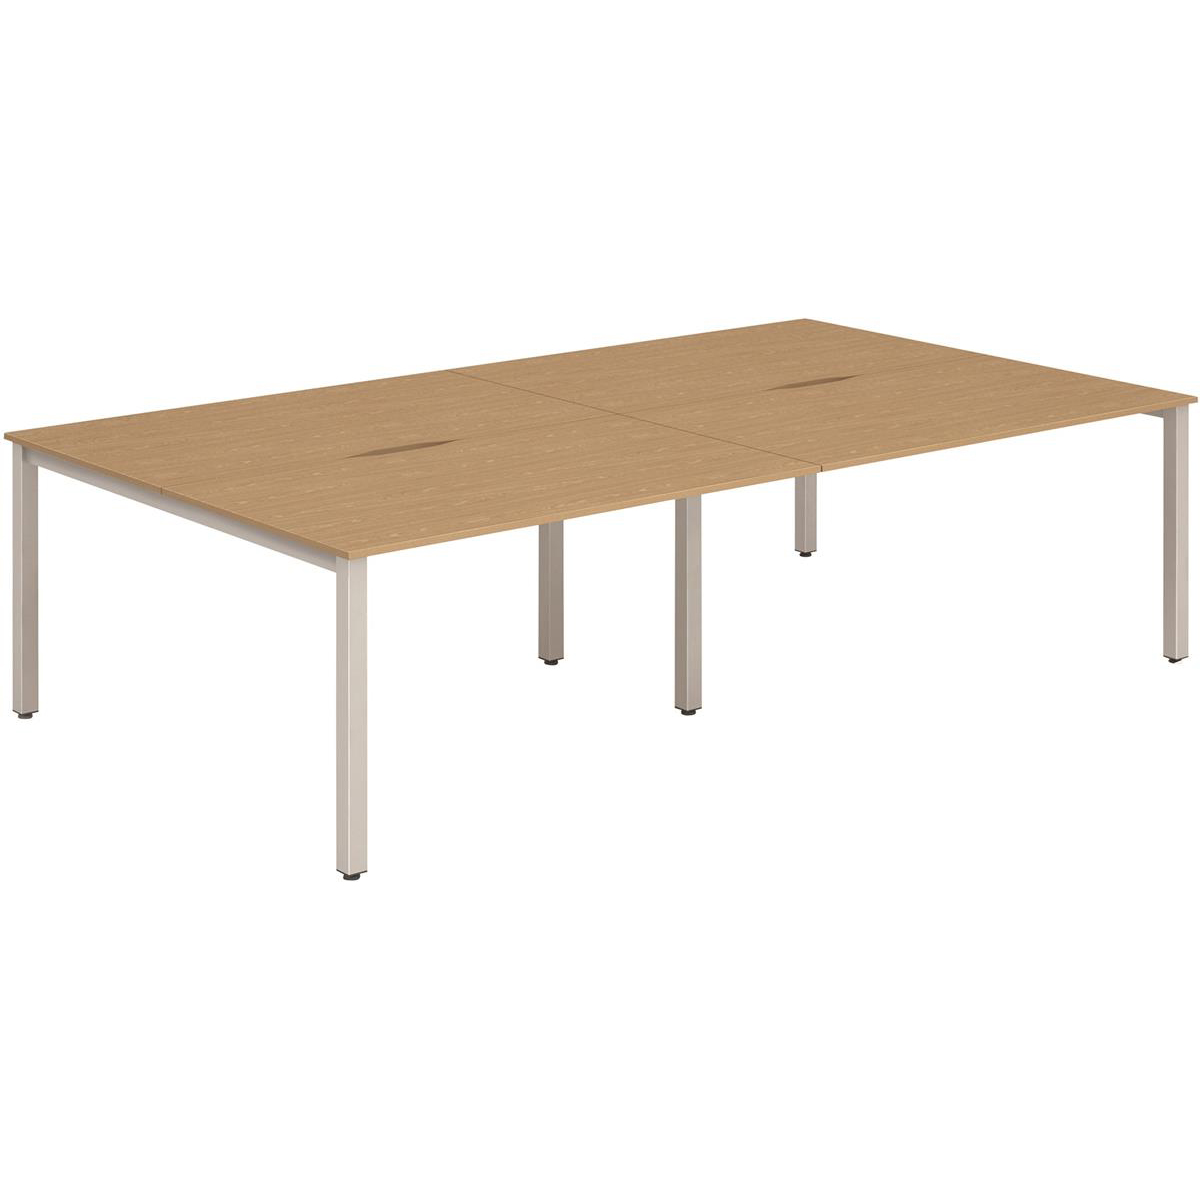 Trexus Bench Desk 4 Person Back to Back Configuration Silver Leg 2400x1600mm Oak Ref BE258